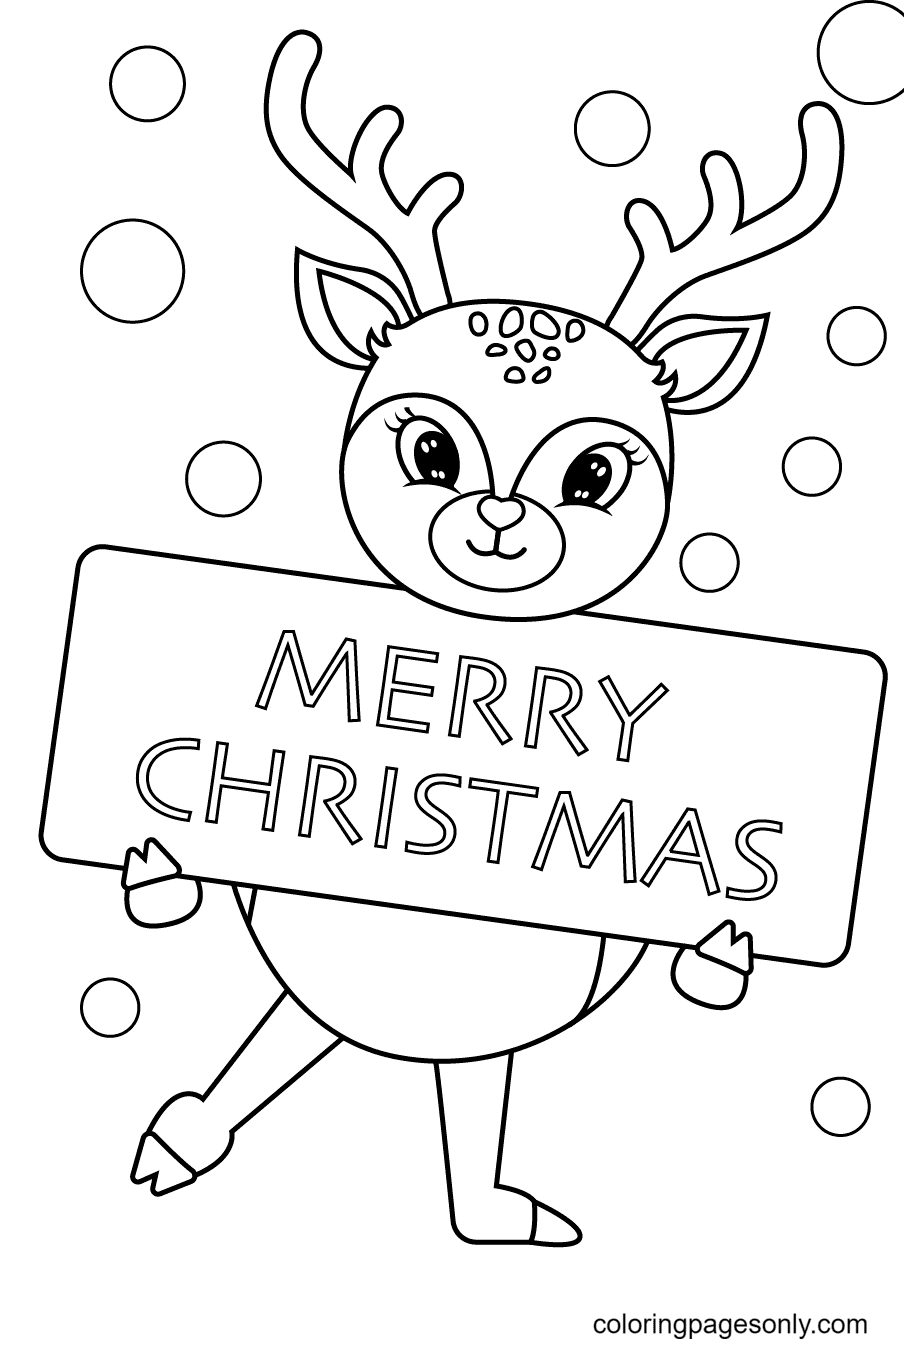 Reindeer Merry Christmas Coloring Page